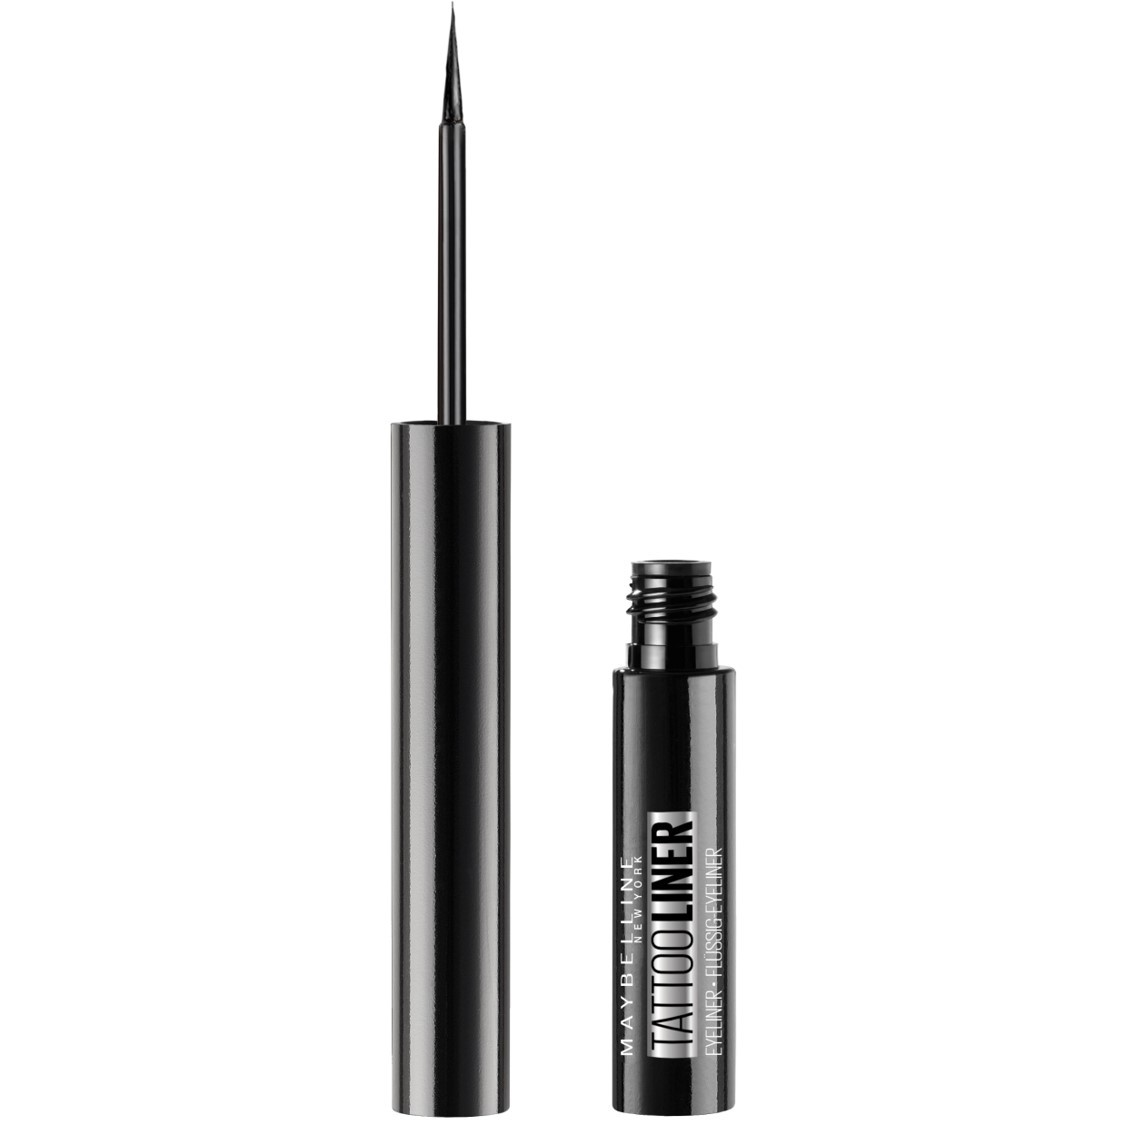 Maybelline - Tattoo Liquid Ink Black -